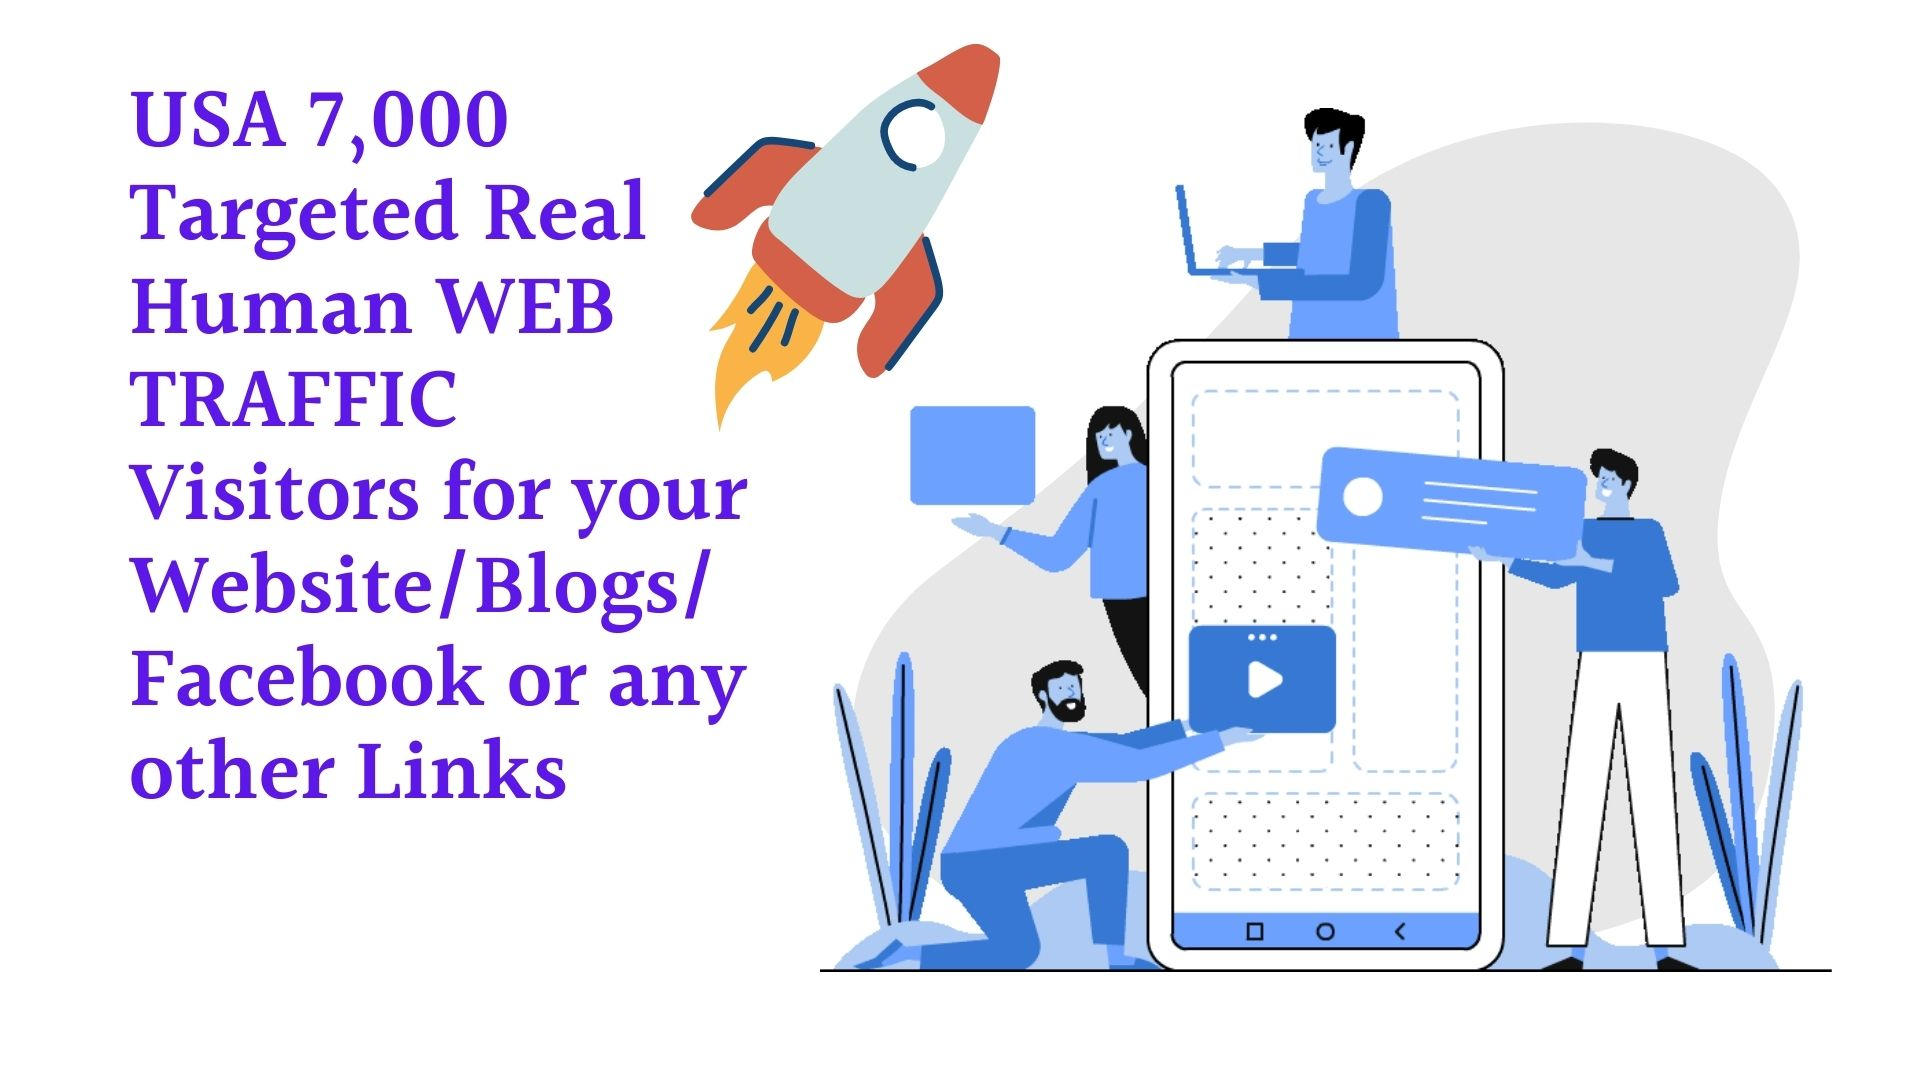 USA 7,000 Targeted Real Human WEB TRAFFIC Visitors for your Website/Blogs/Facebook or any other Link